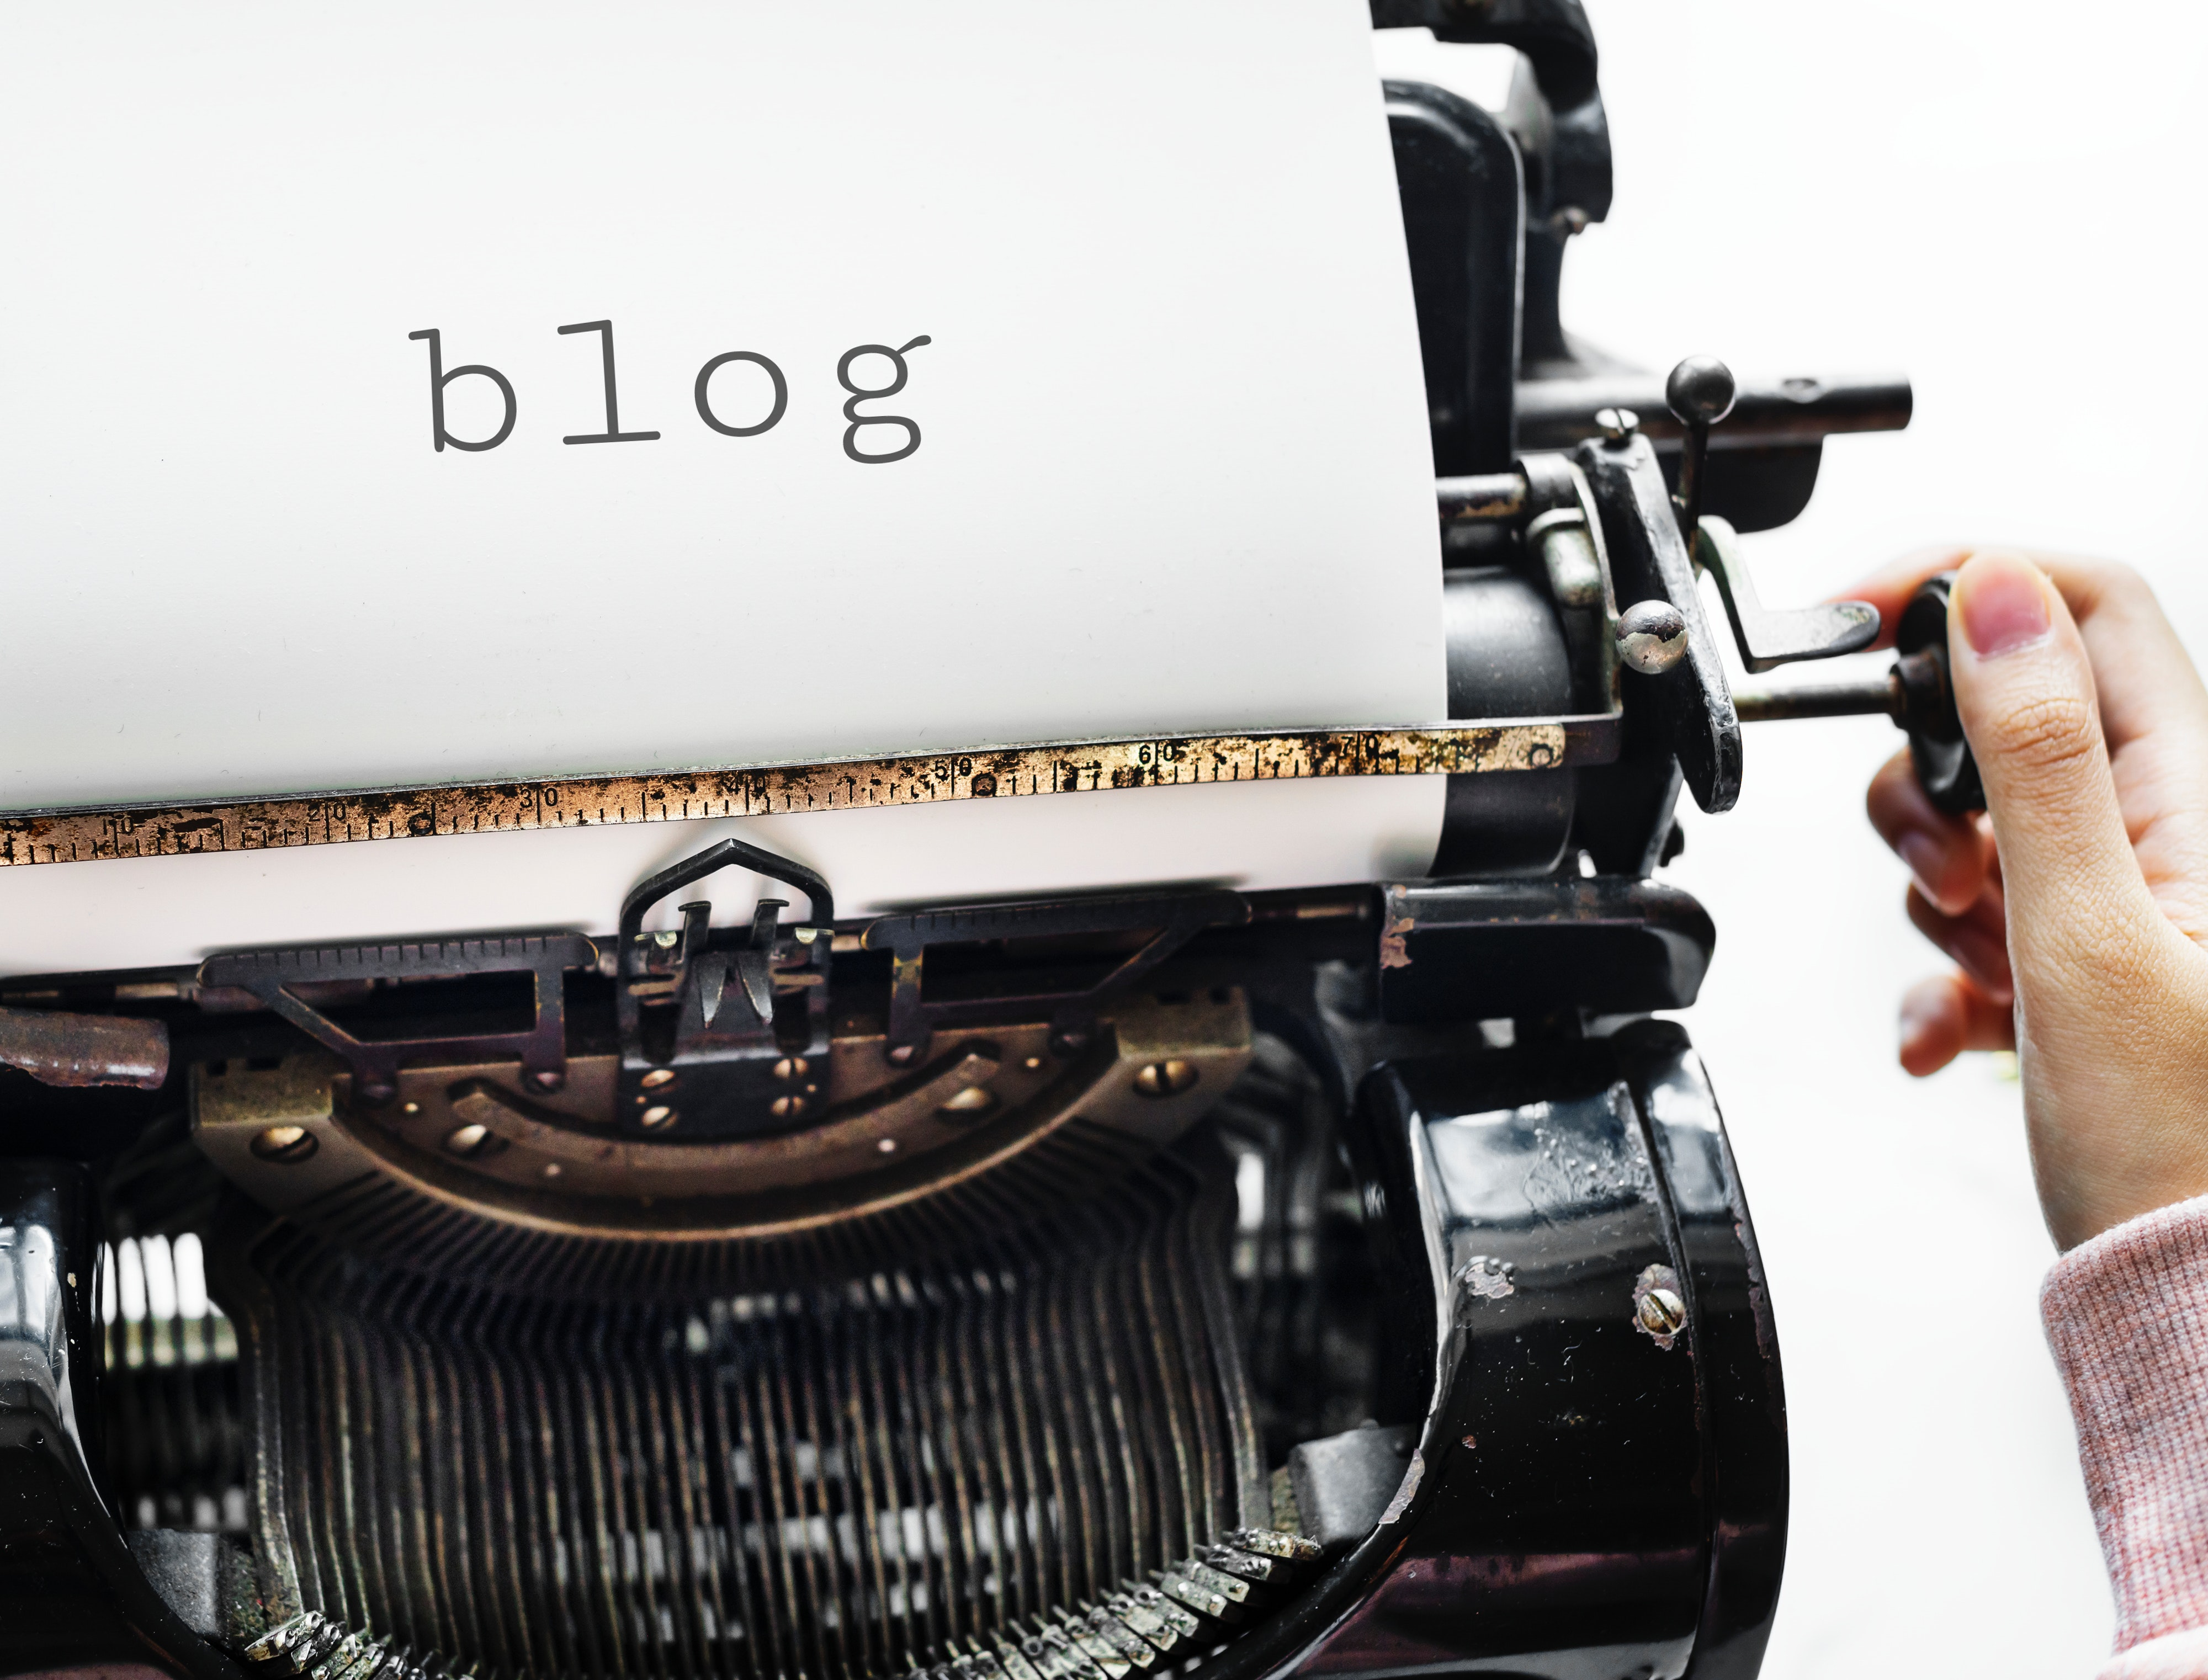 How to improve the readability of your Blog?